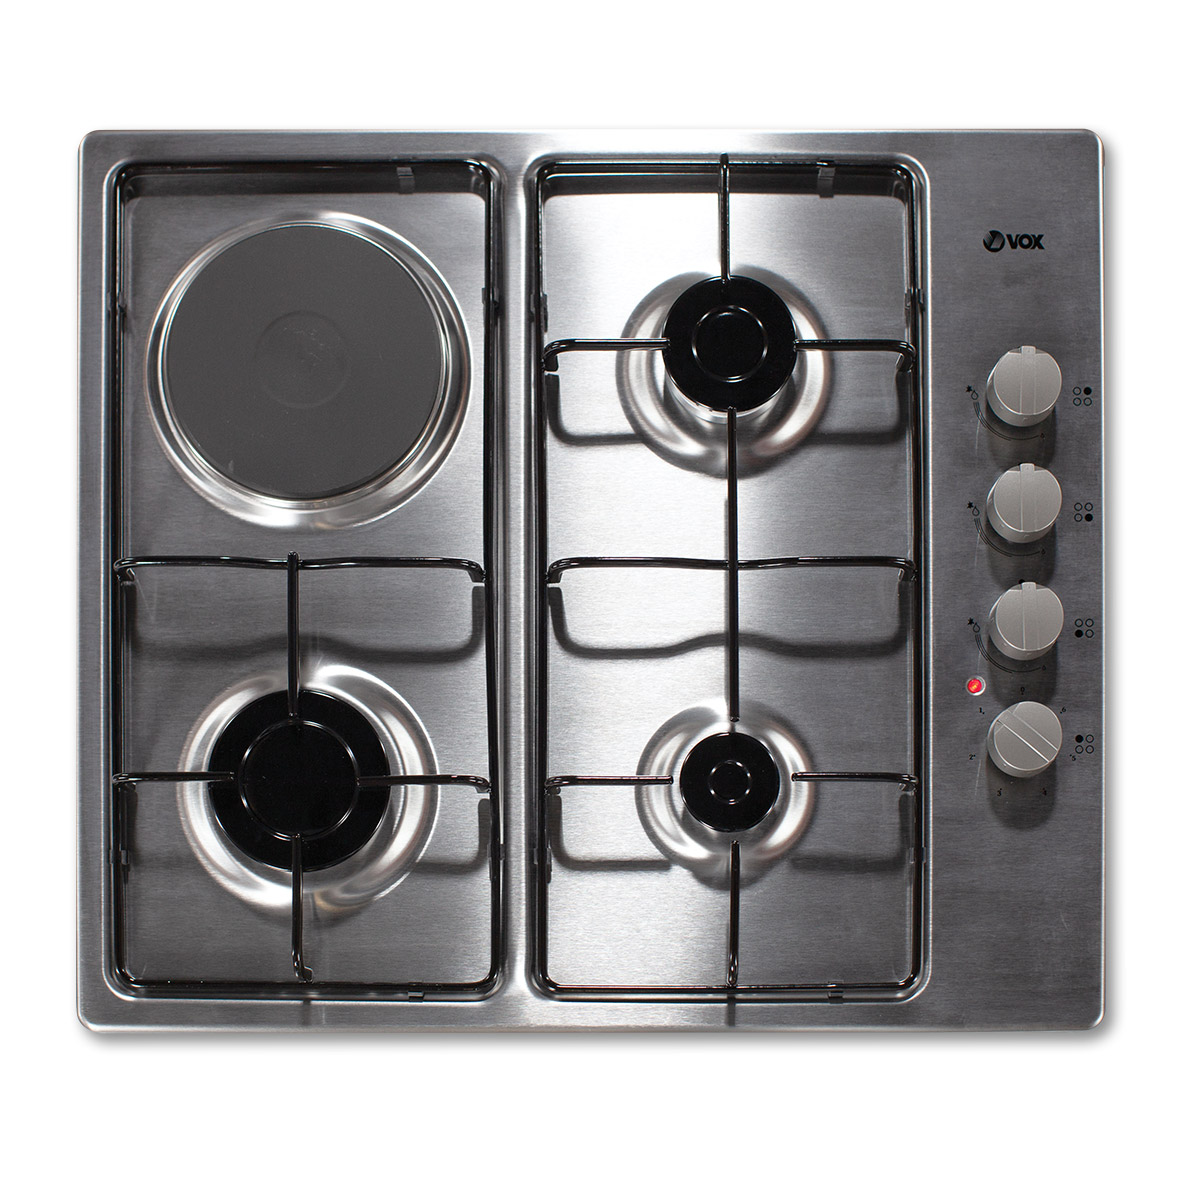 Built-in hob EBG310GIX